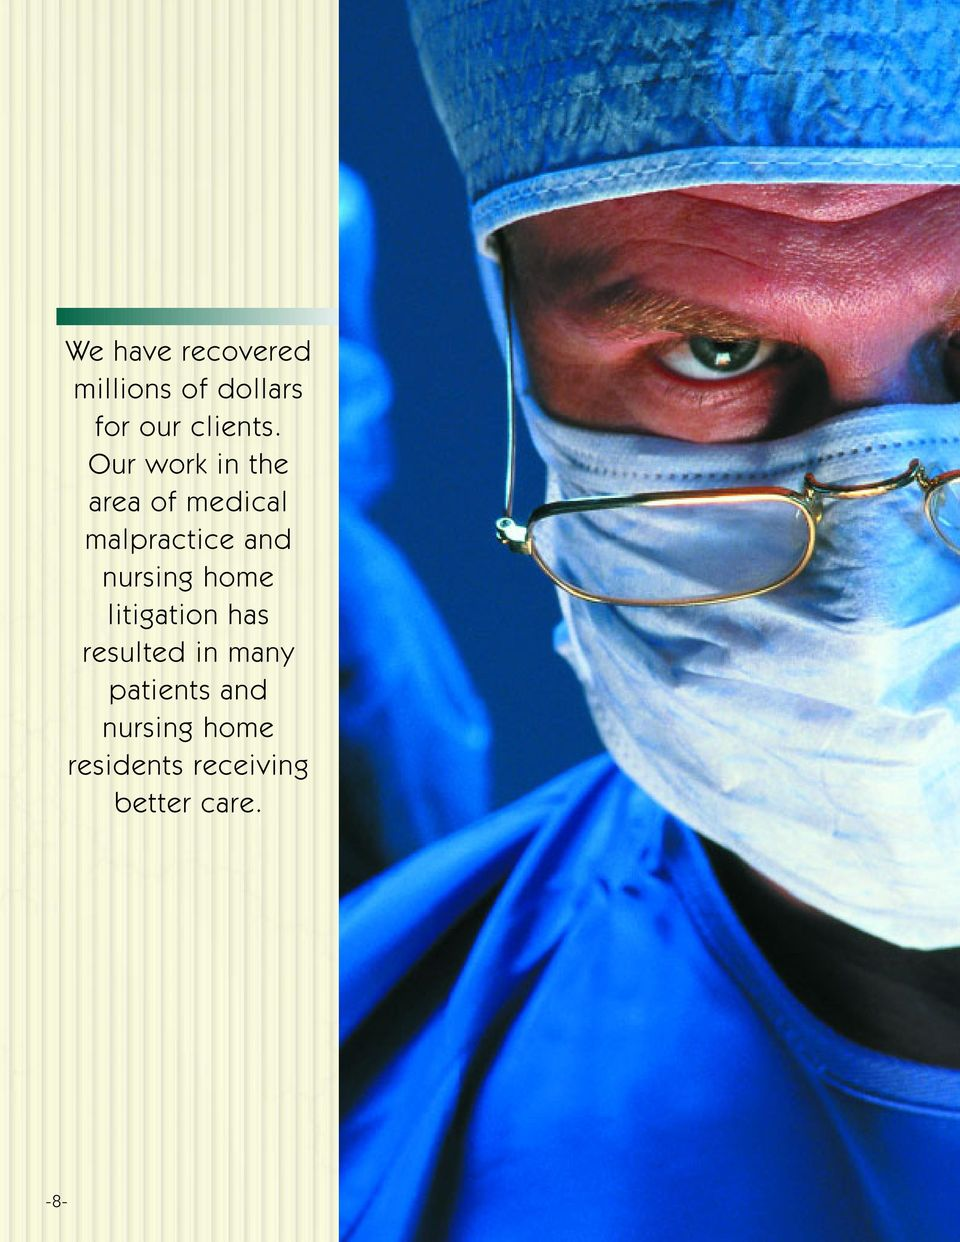 Our work in the area of medical malpractice and